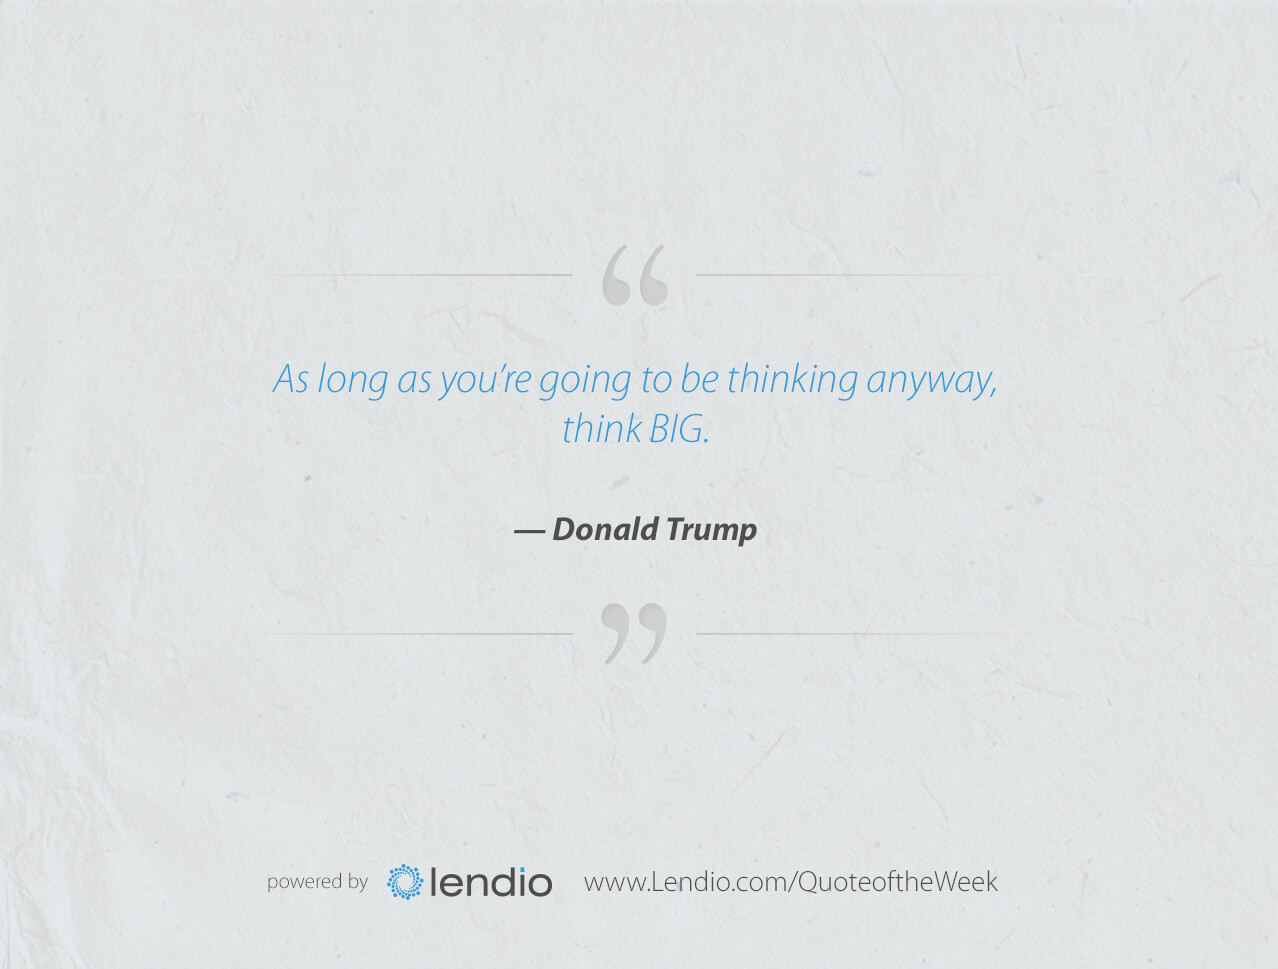 Lendio Business quote - Think Big: As long as you're going to be thinking anyway think BIG.